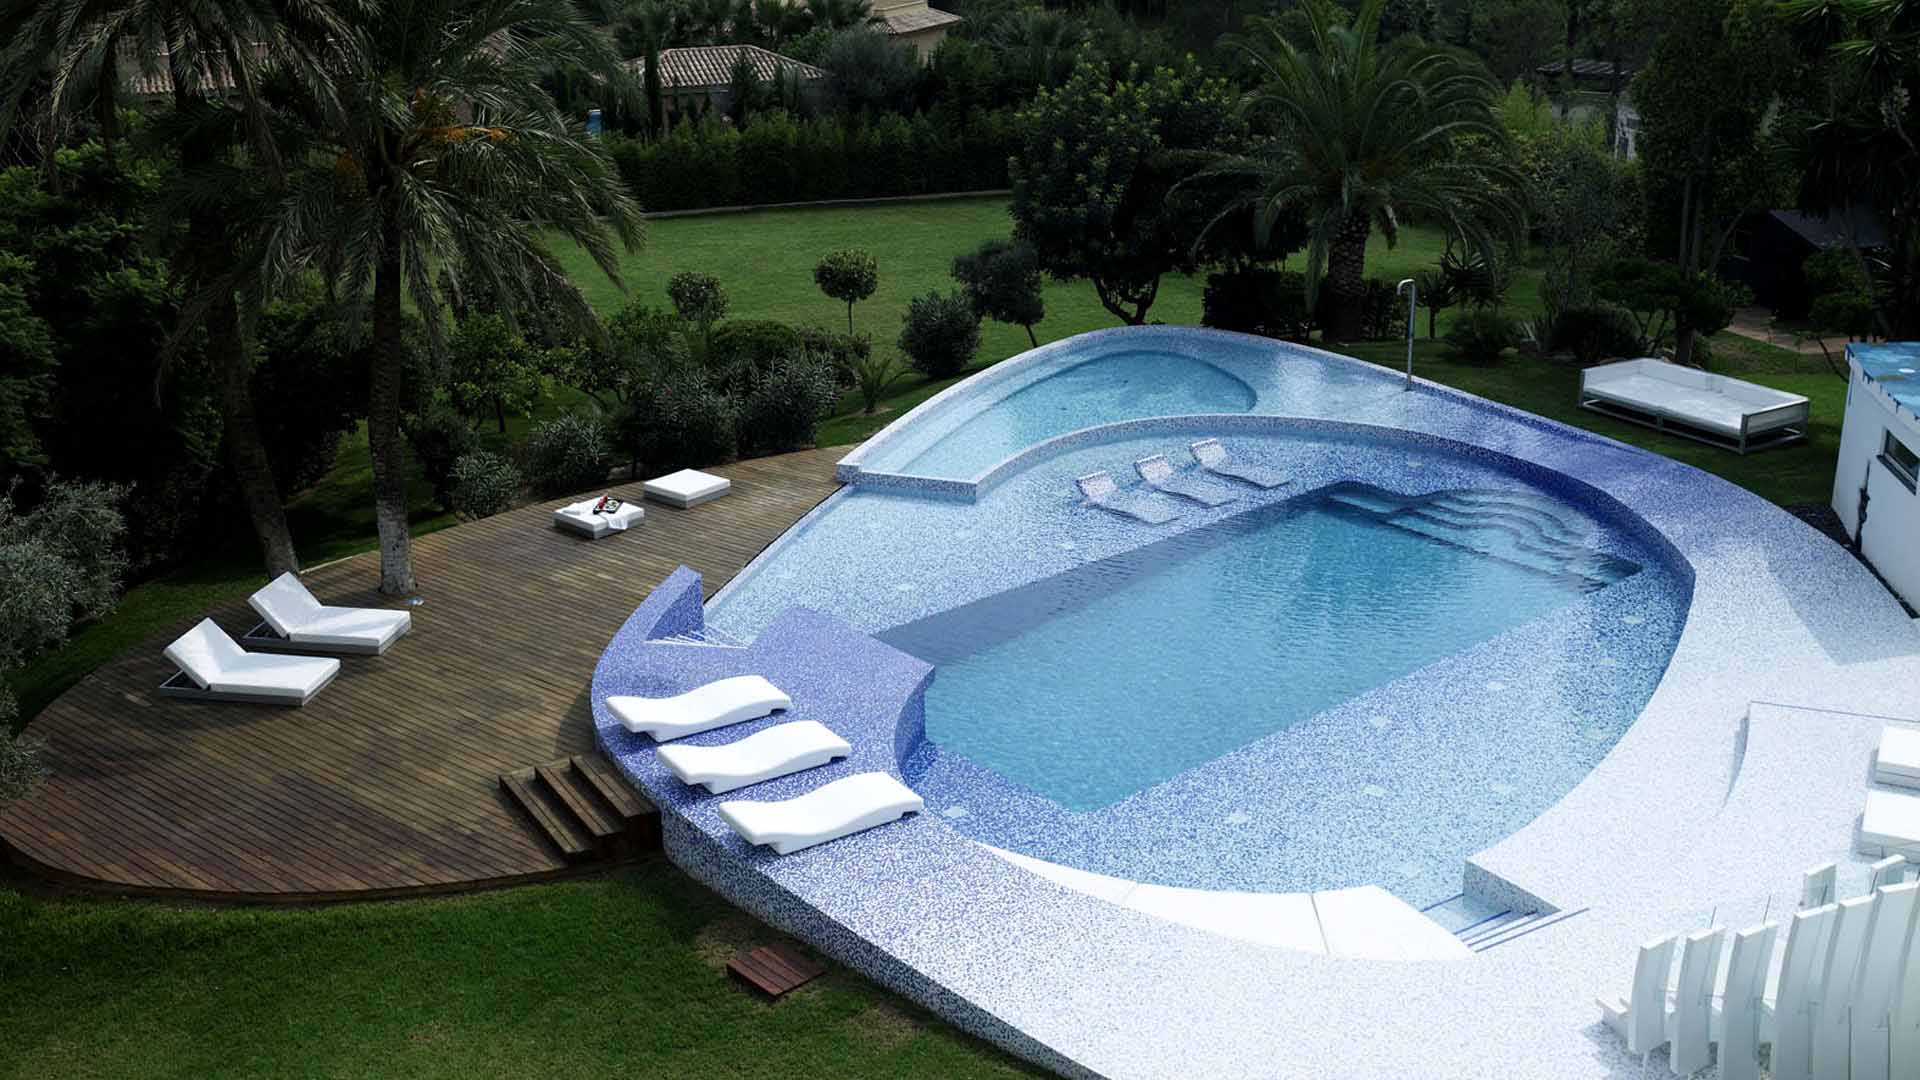 Know More About Pool Builders